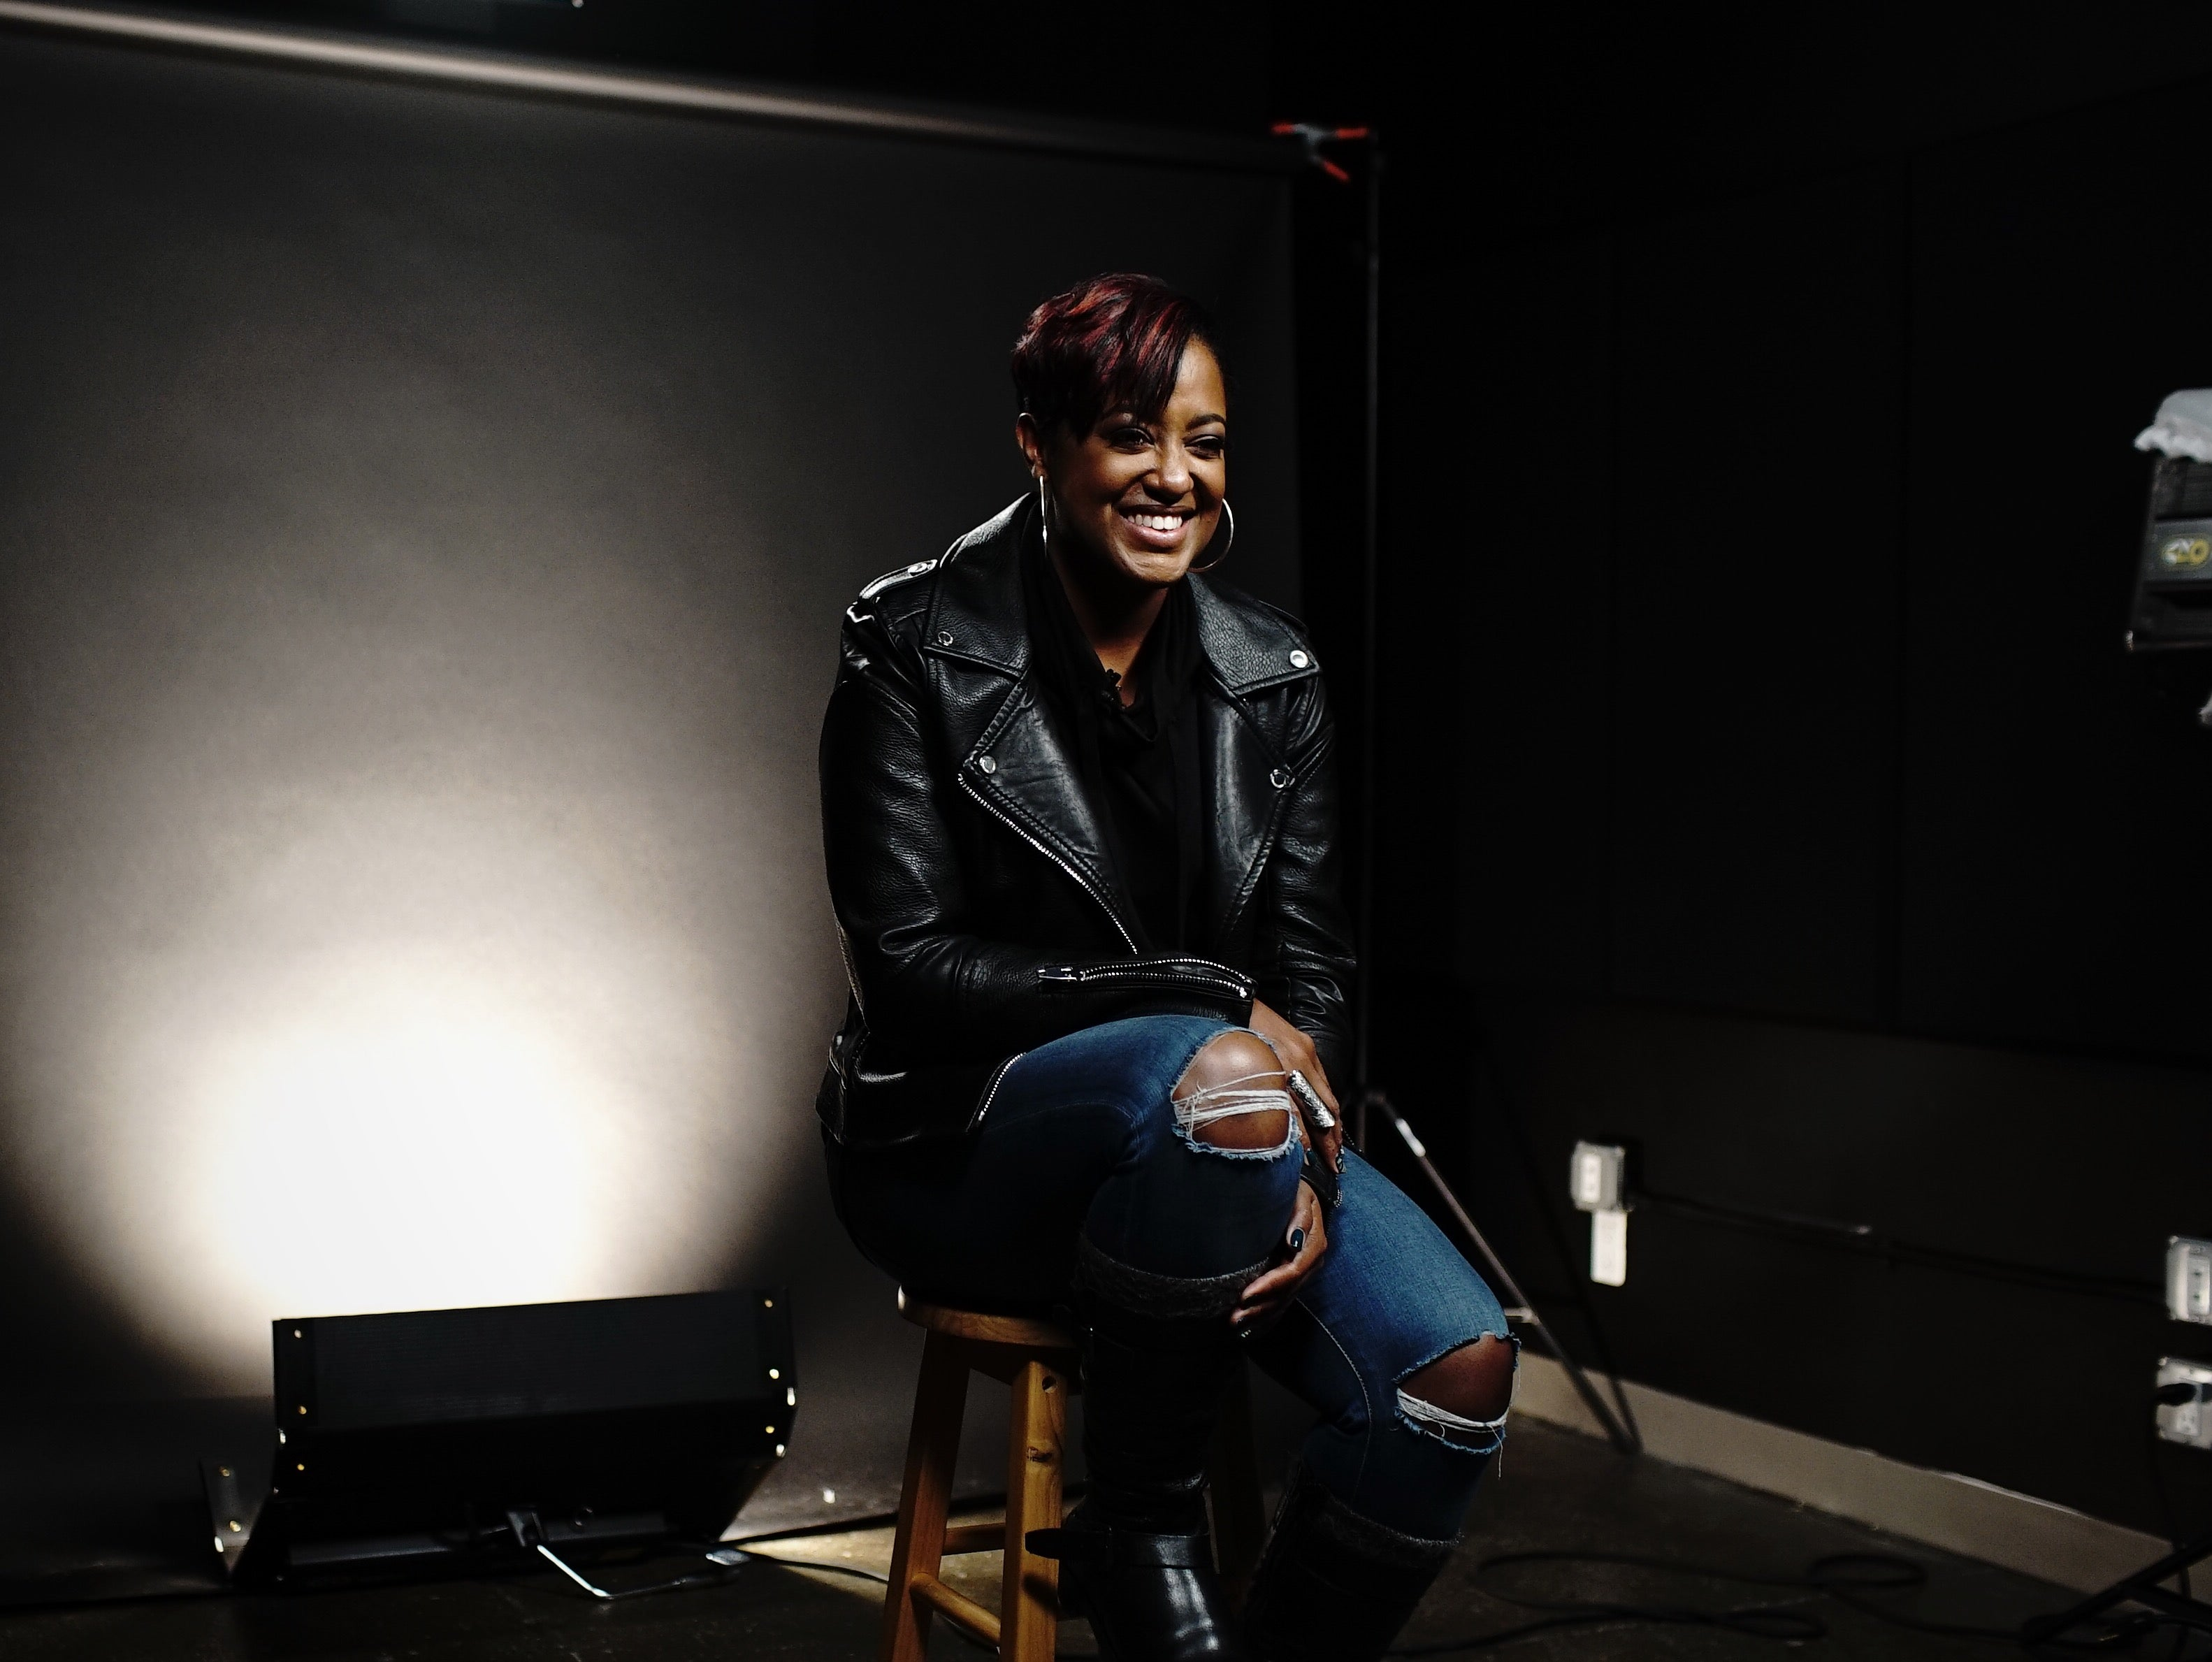 Roc Nation's Rapsody Talks Messages In Music And Women Working Together